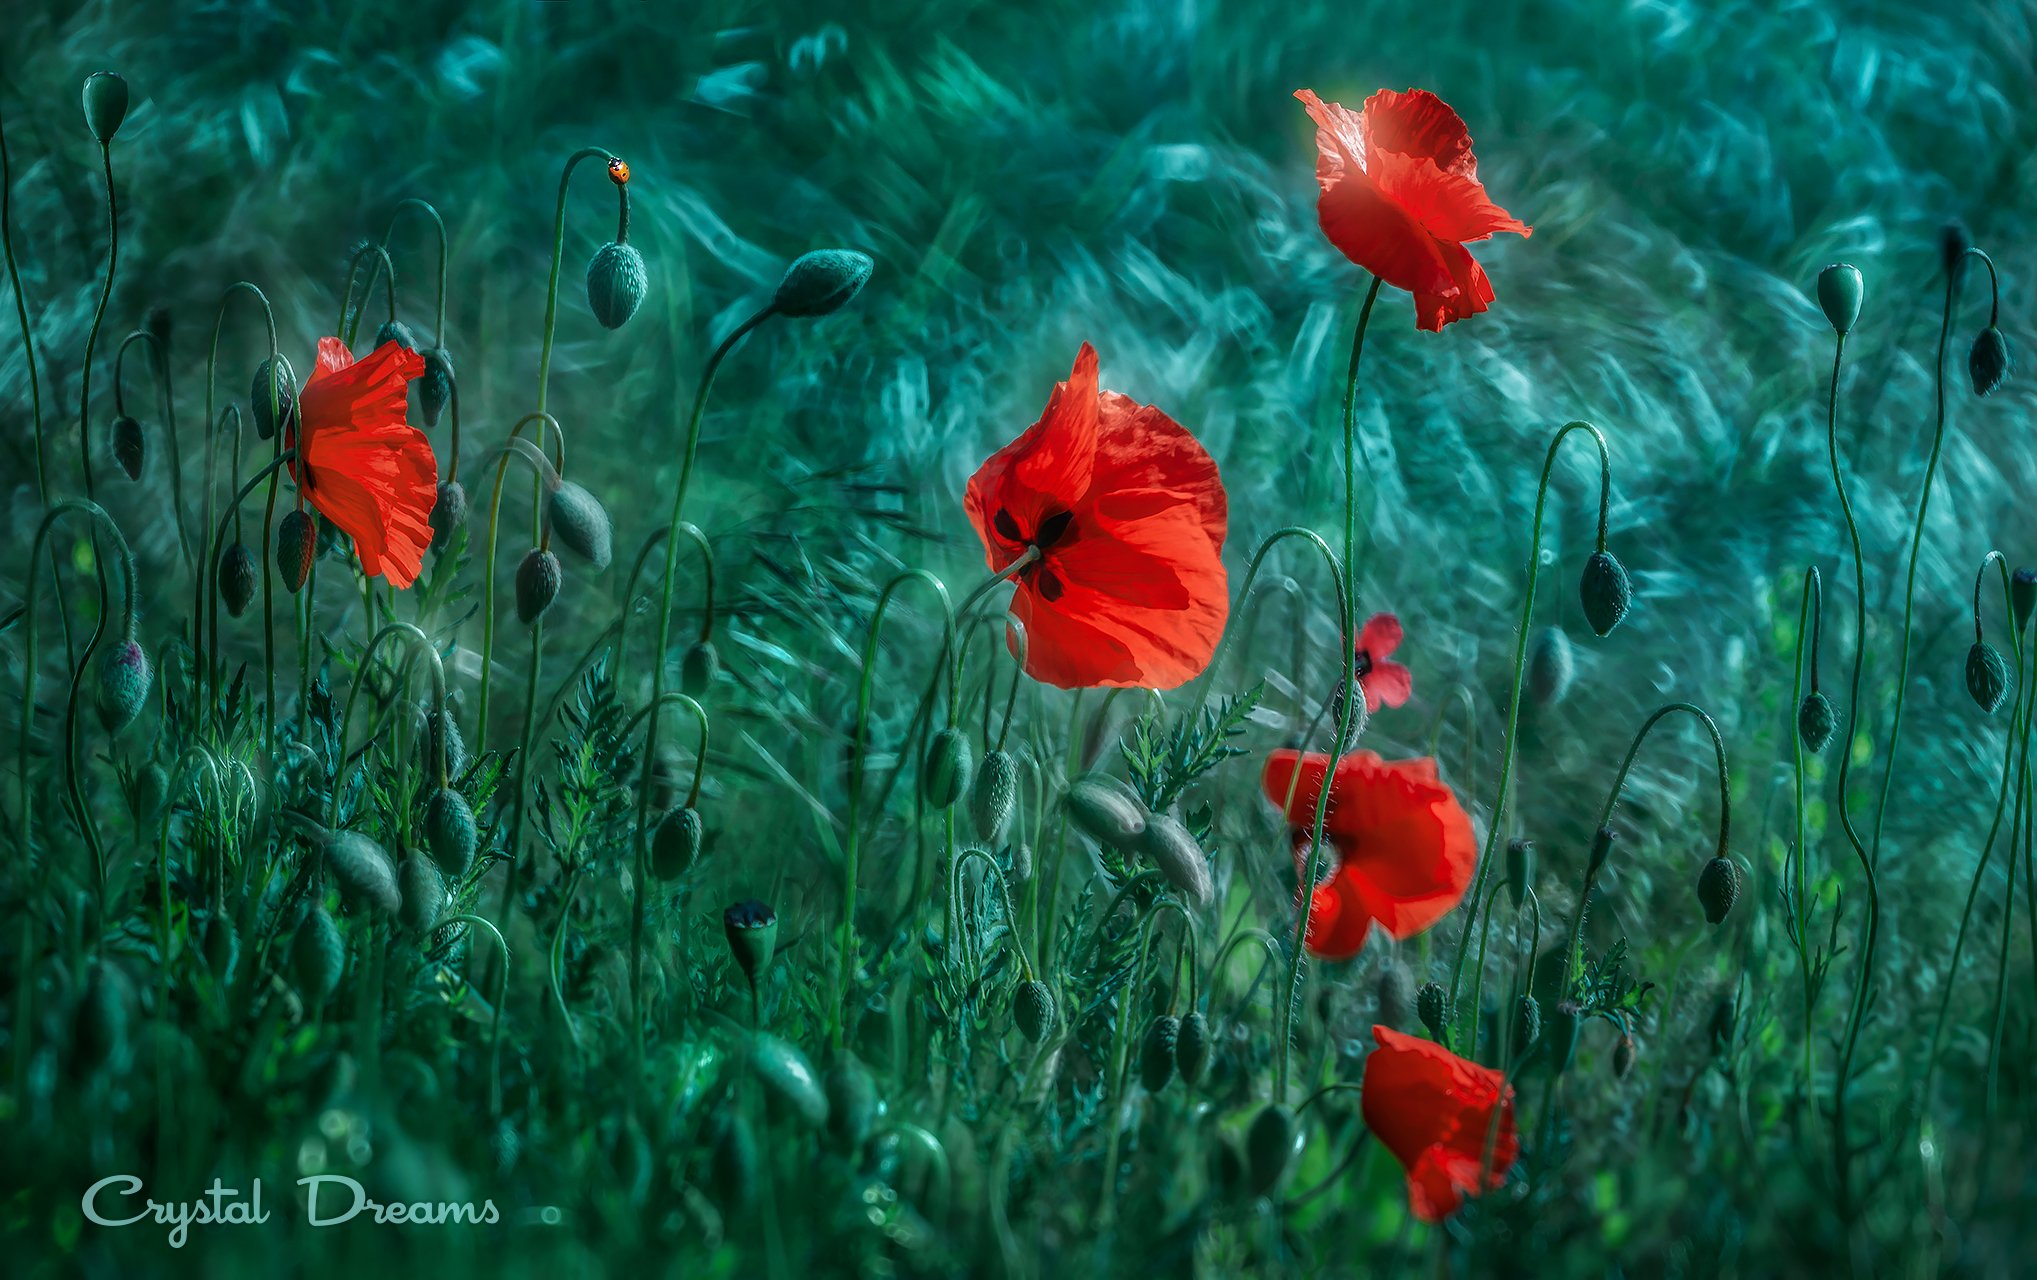 crystal dreams, macro, spring, color, art, nature, wild, meadow, poppies, Крылова Татьяна